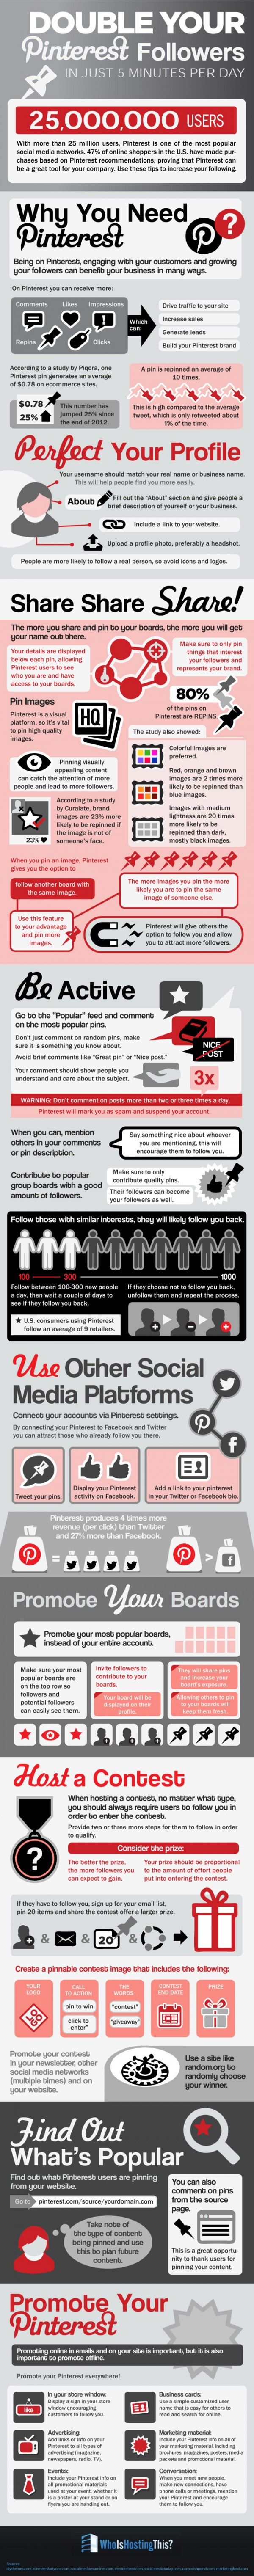 Infographic How To Double Your Pinterest Followers In 5 Minutes Per Day